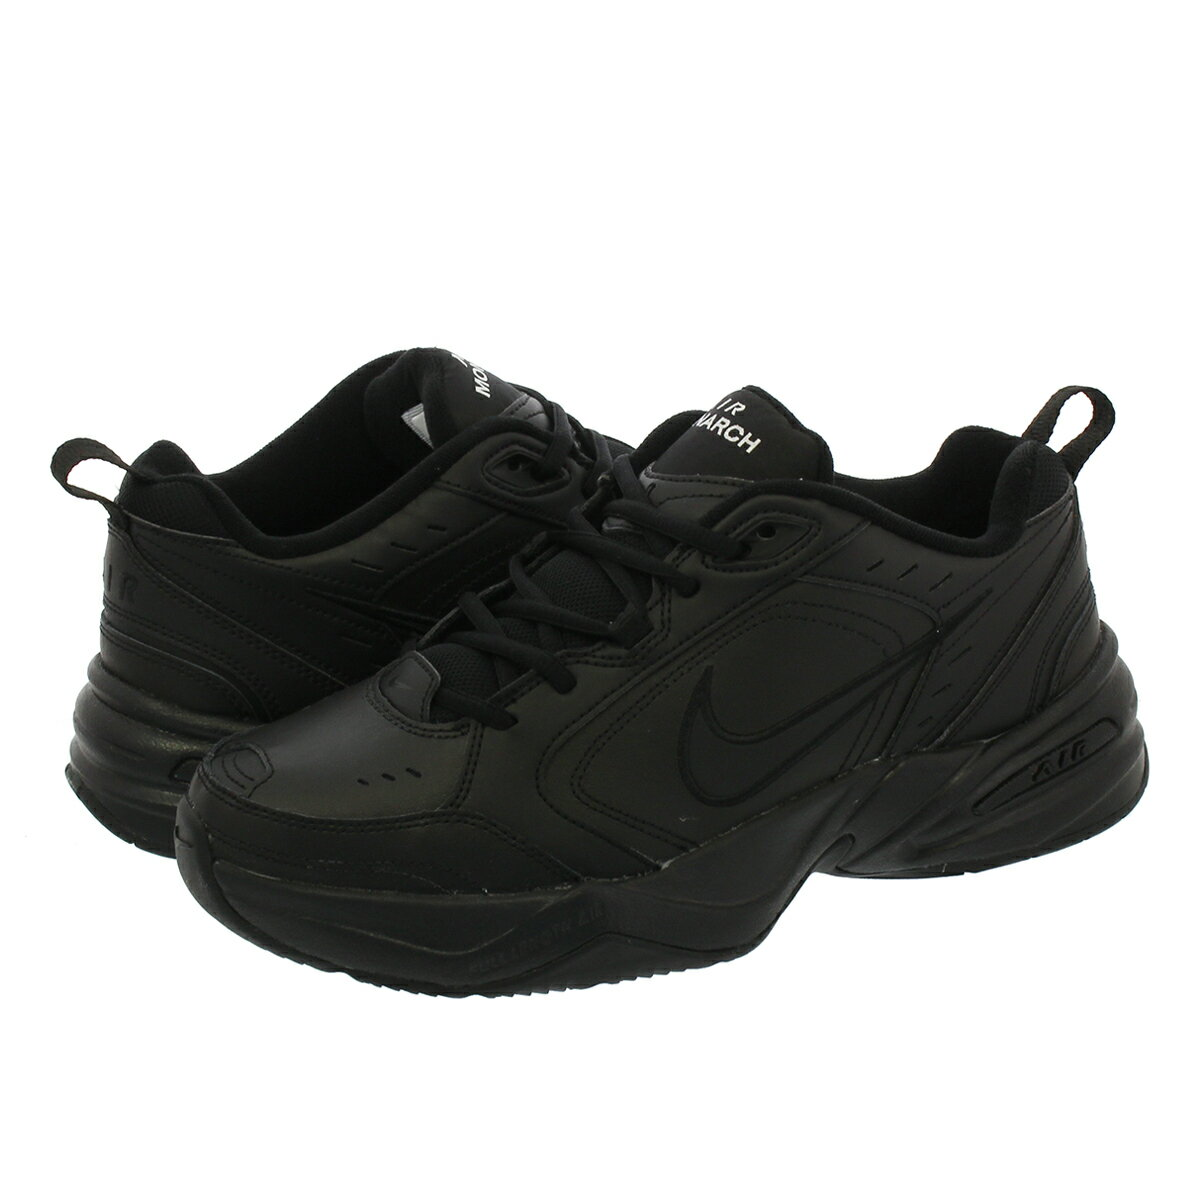 NIKE AIR MONARCH IV ナイキ エア モナーク 4 BLACK/BLACK 415445-001